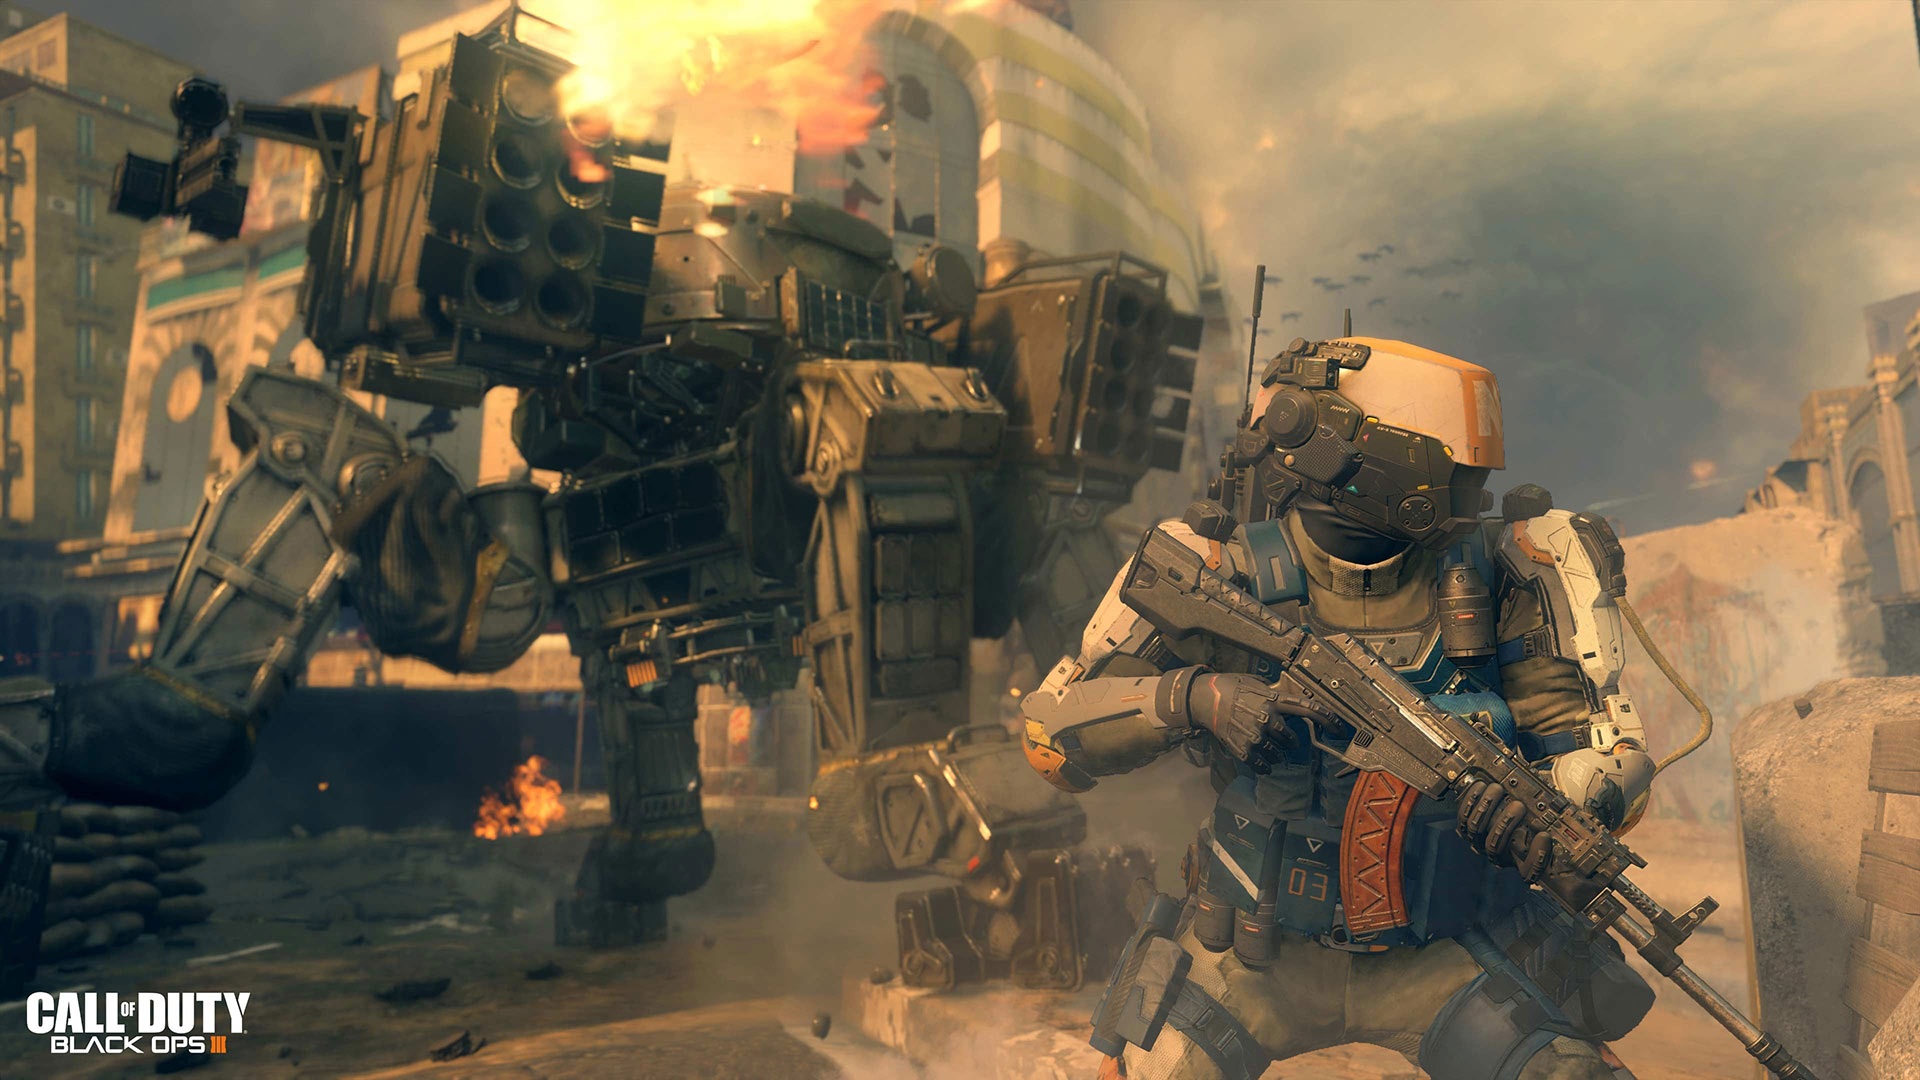 call of duty black ops 3 e3 2015 reveal